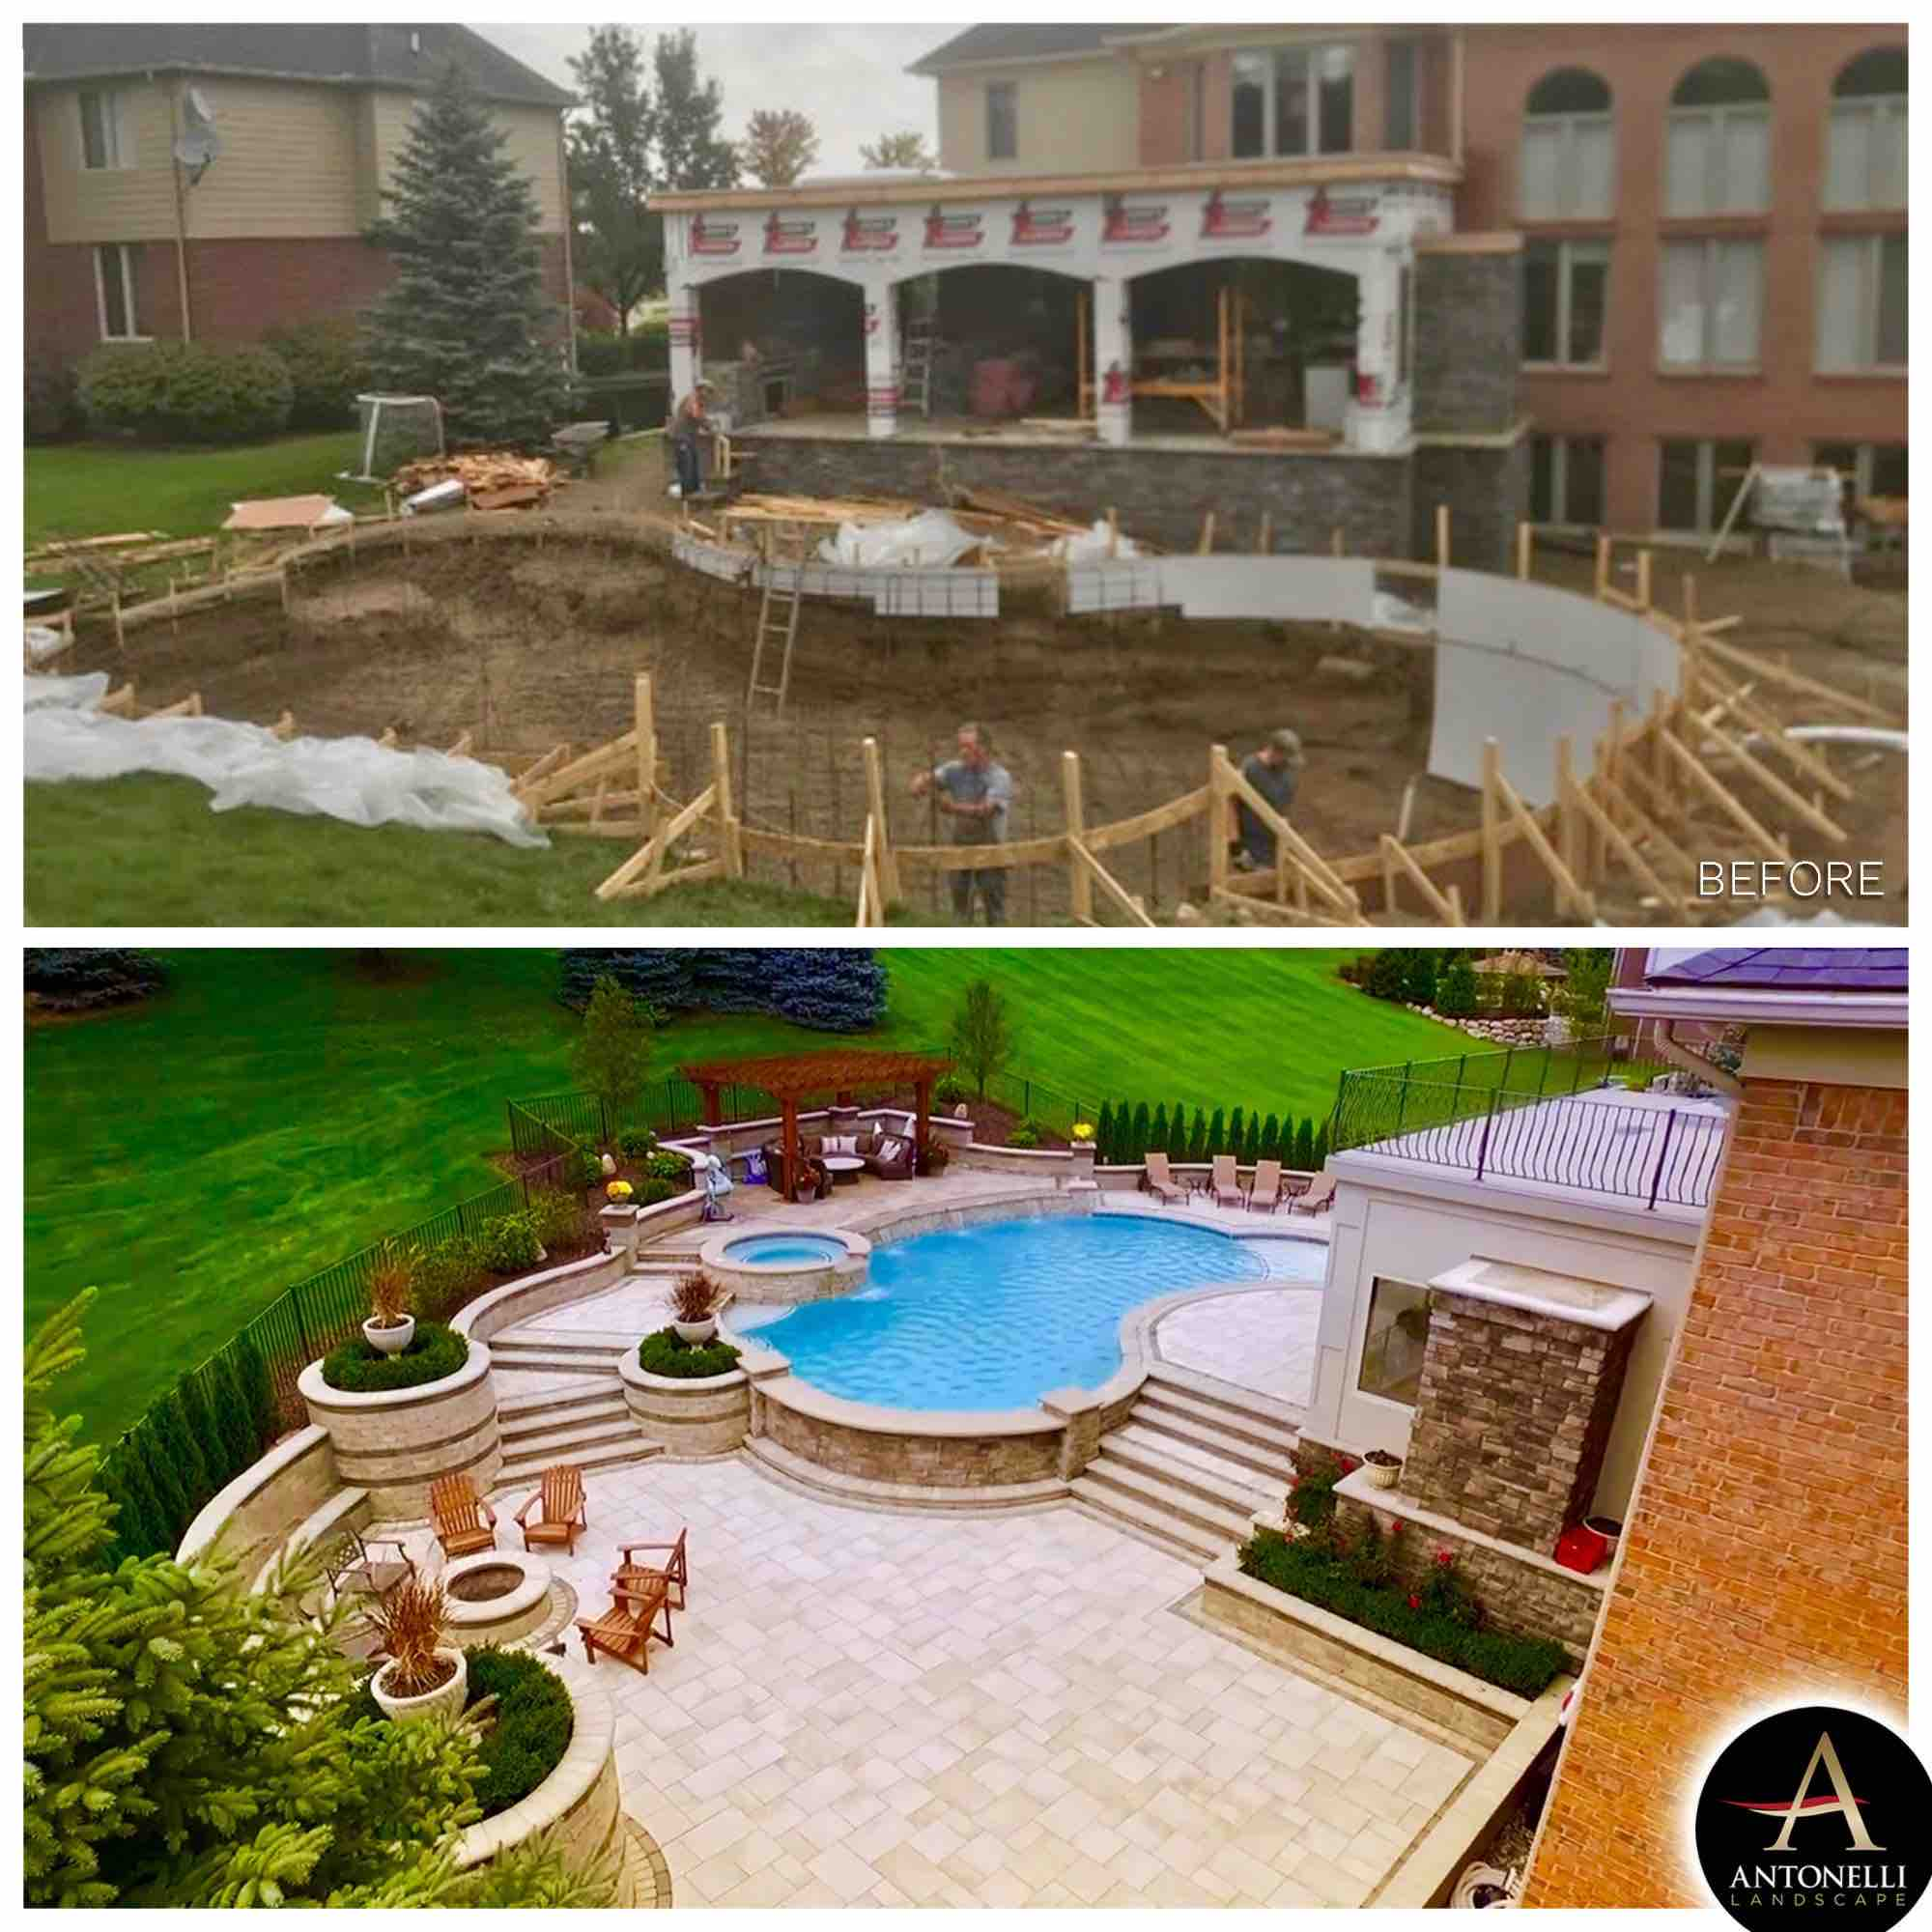 before and after pool & patio are installed